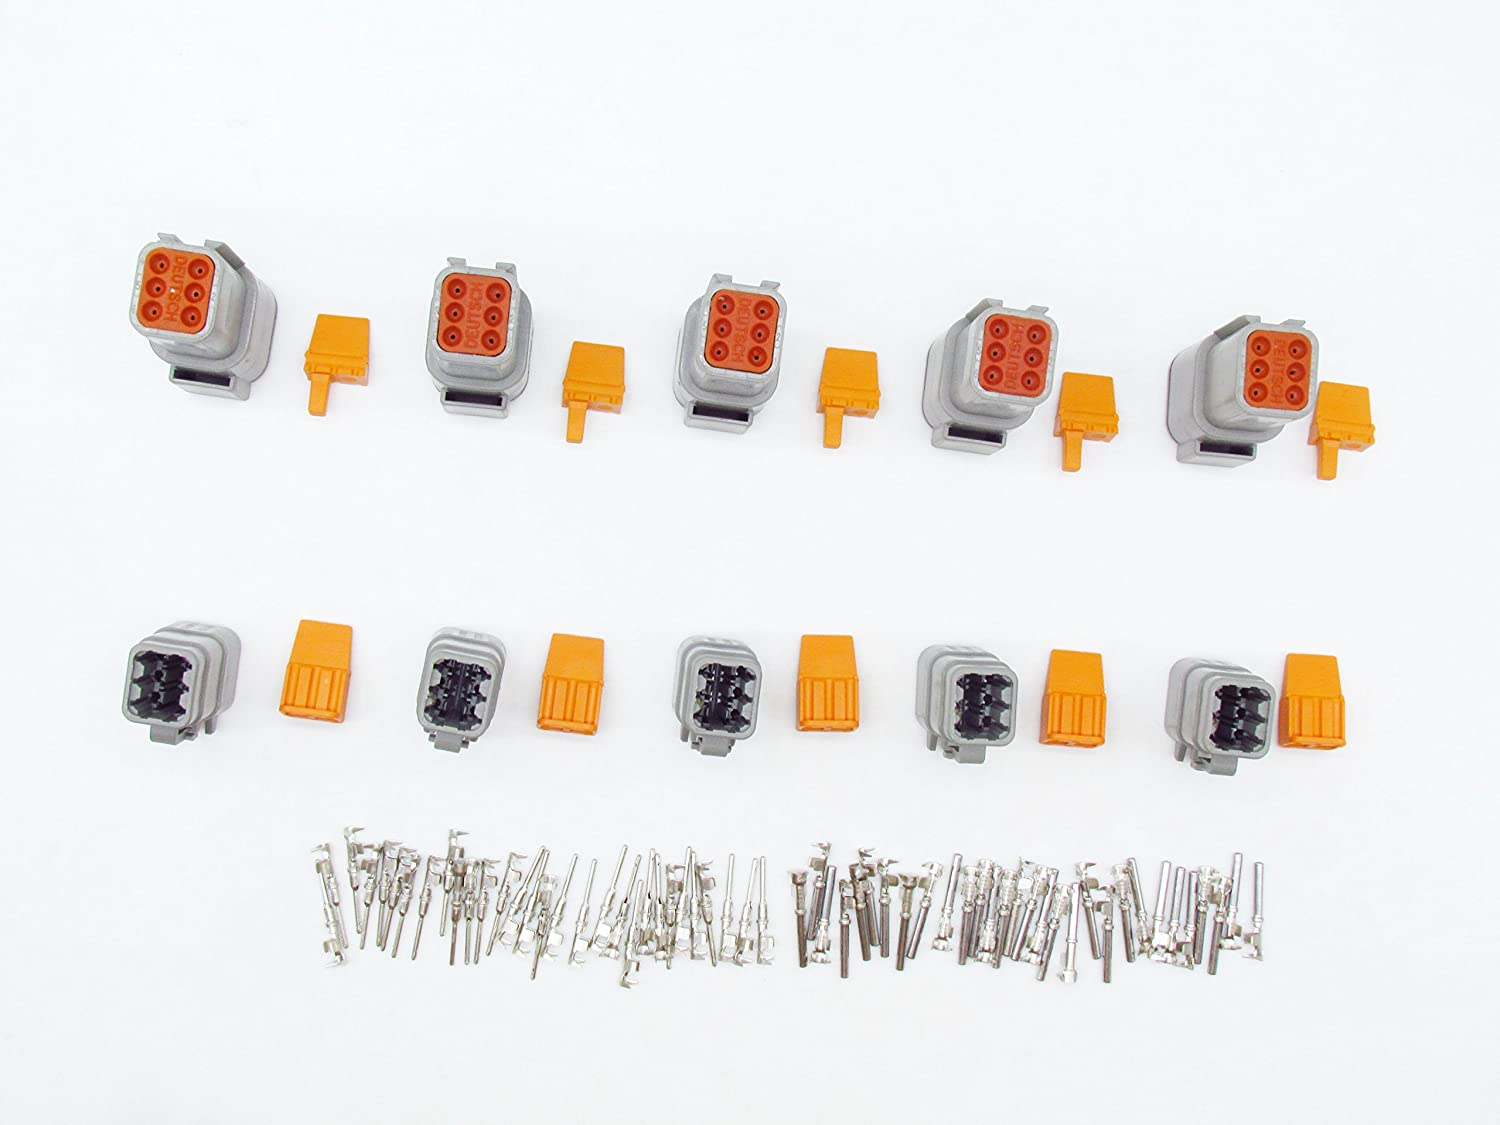 CNKF 5 Sets DTM06-6S DTM04-6P 6 pin way female male auto connectors